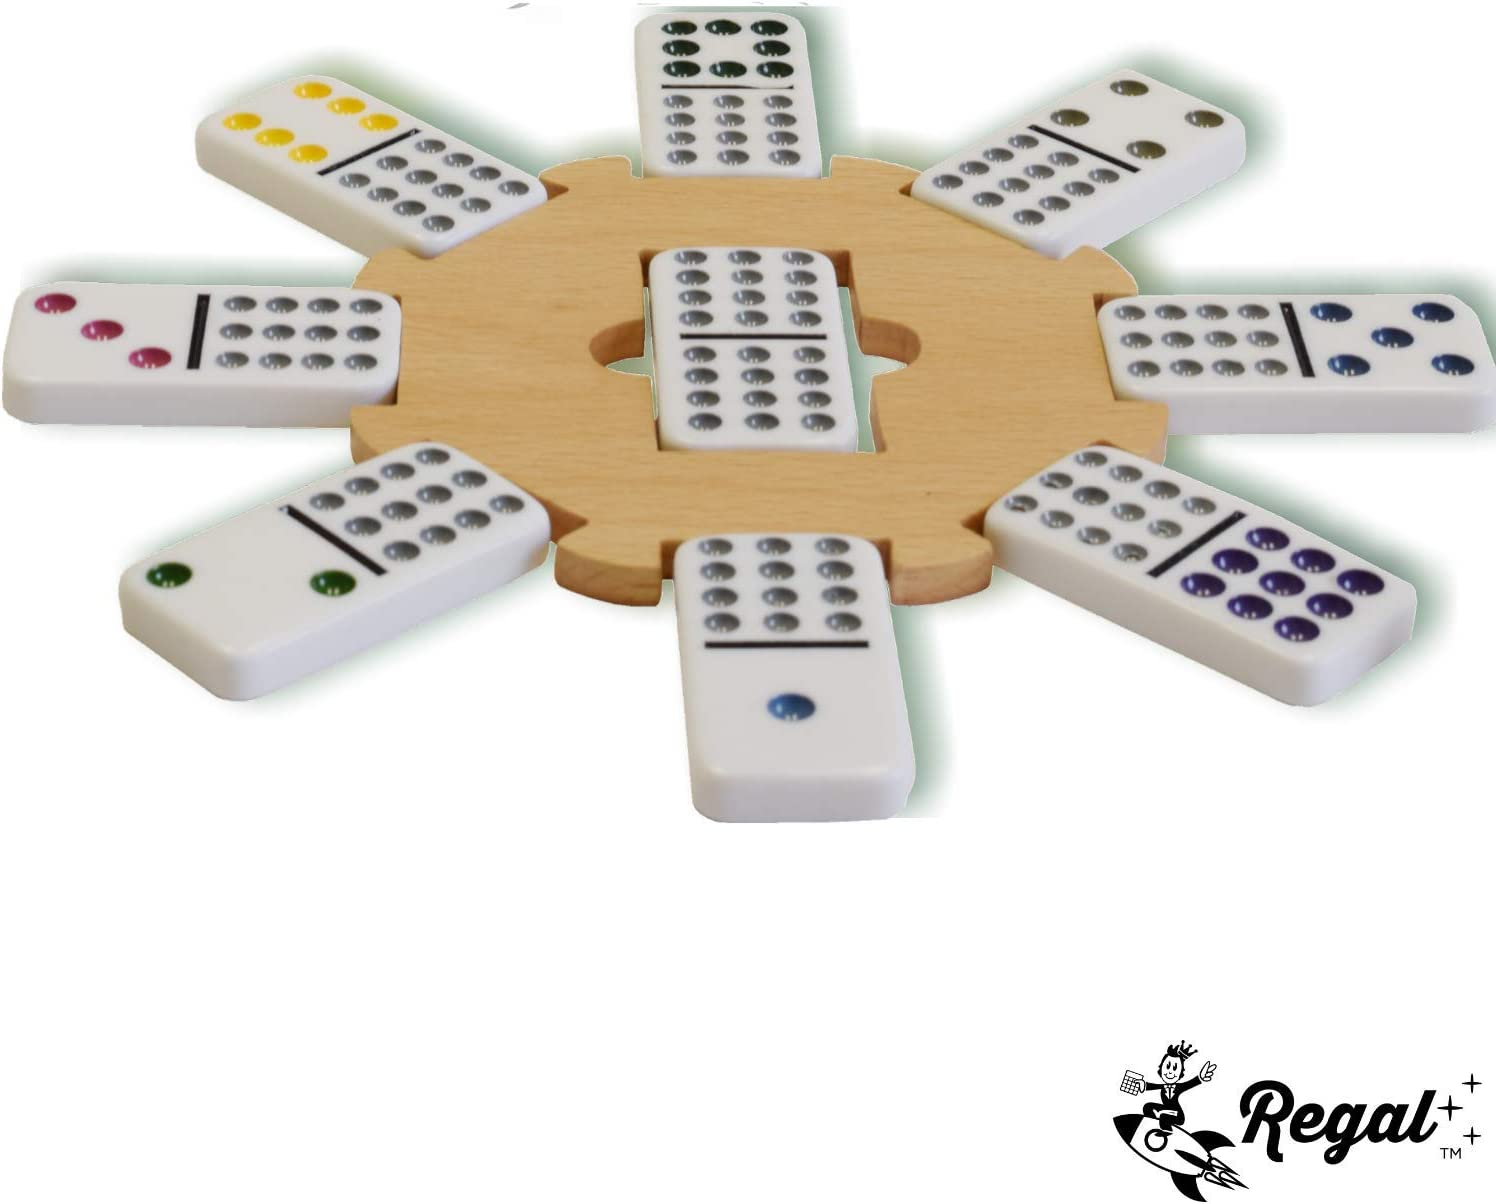 136 Pc Set Jumbo Double 15 Color Dot Dominoes W// Tin Case For Mexican Train Game